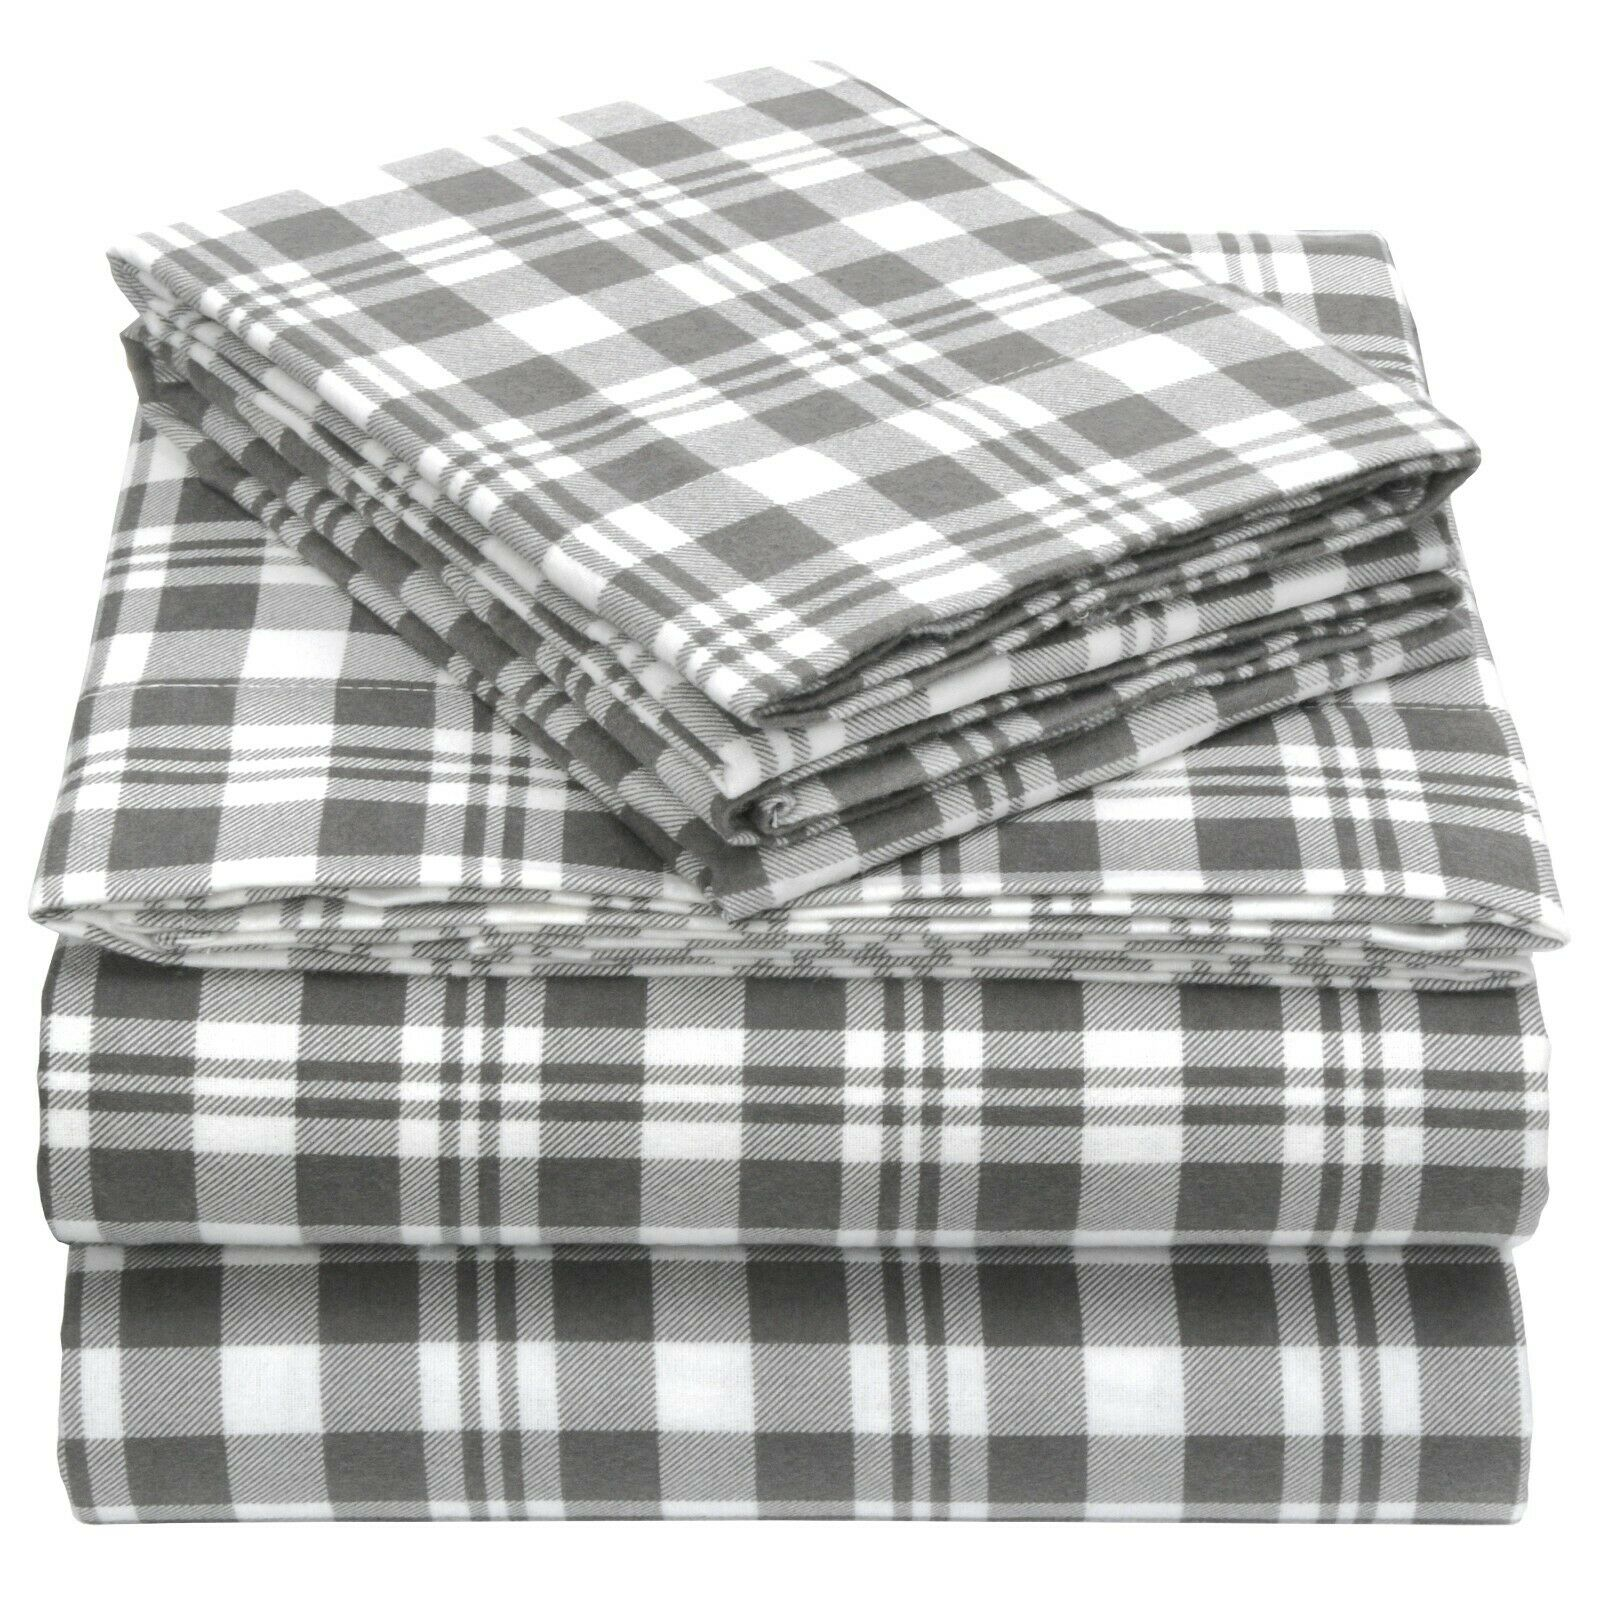 100% Cotton Flannel Sheet Set by EnvioHome - grau Plaid